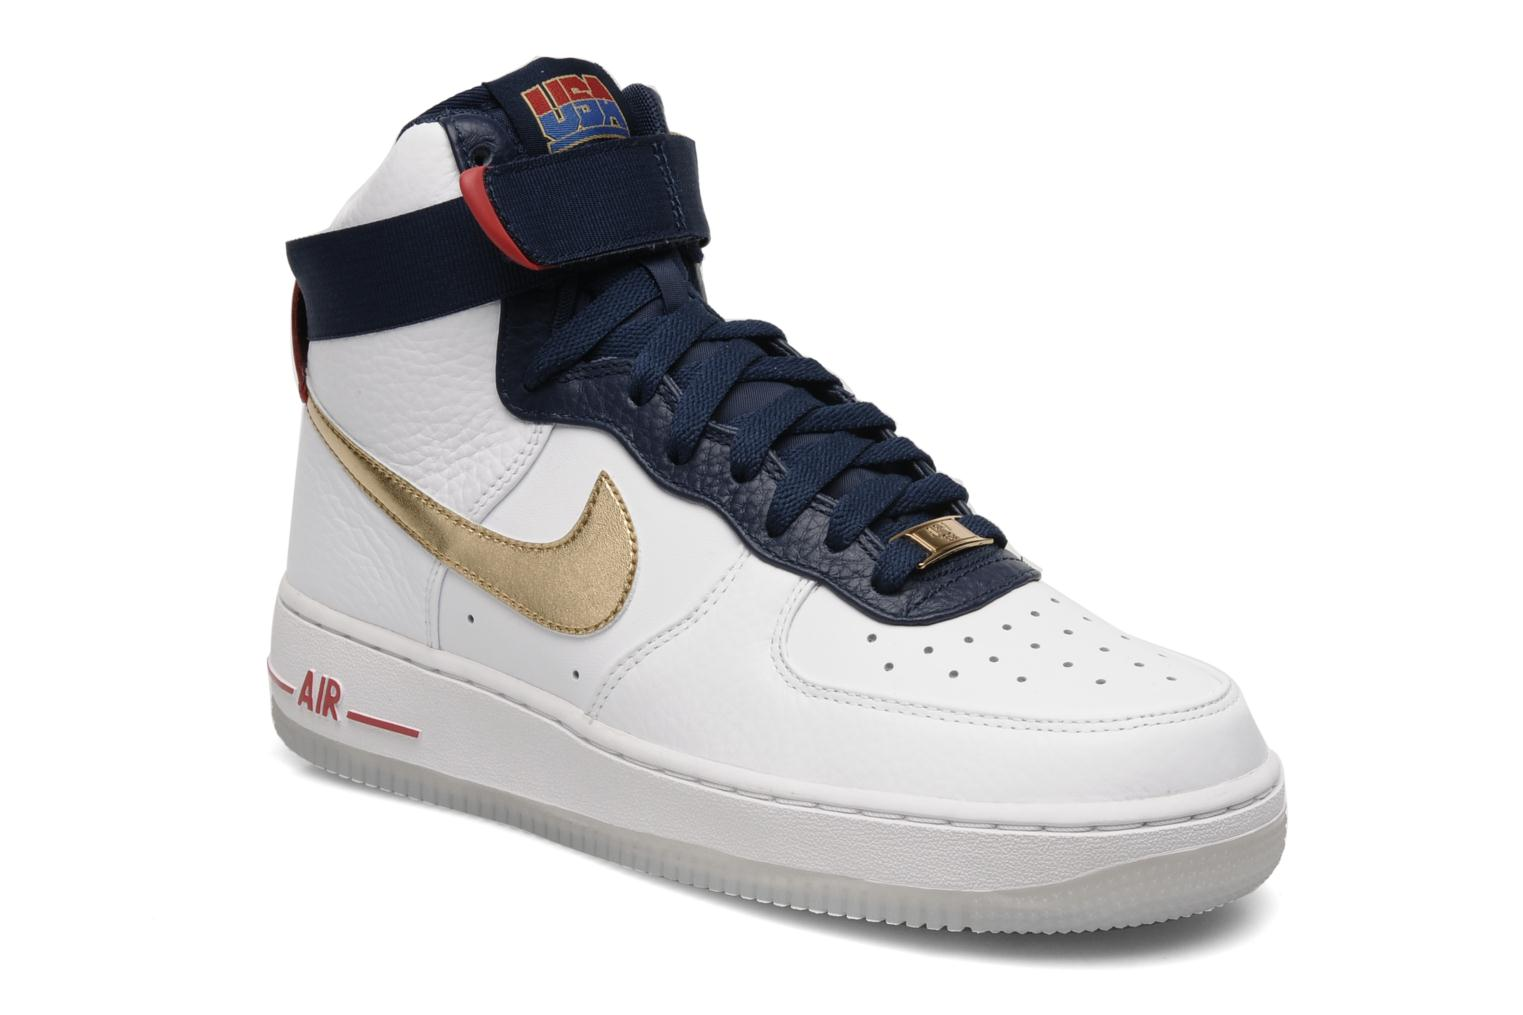 nike air force 1 high 39 07 usa trainers in white at sarenza. Black Bedroom Furniture Sets. Home Design Ideas